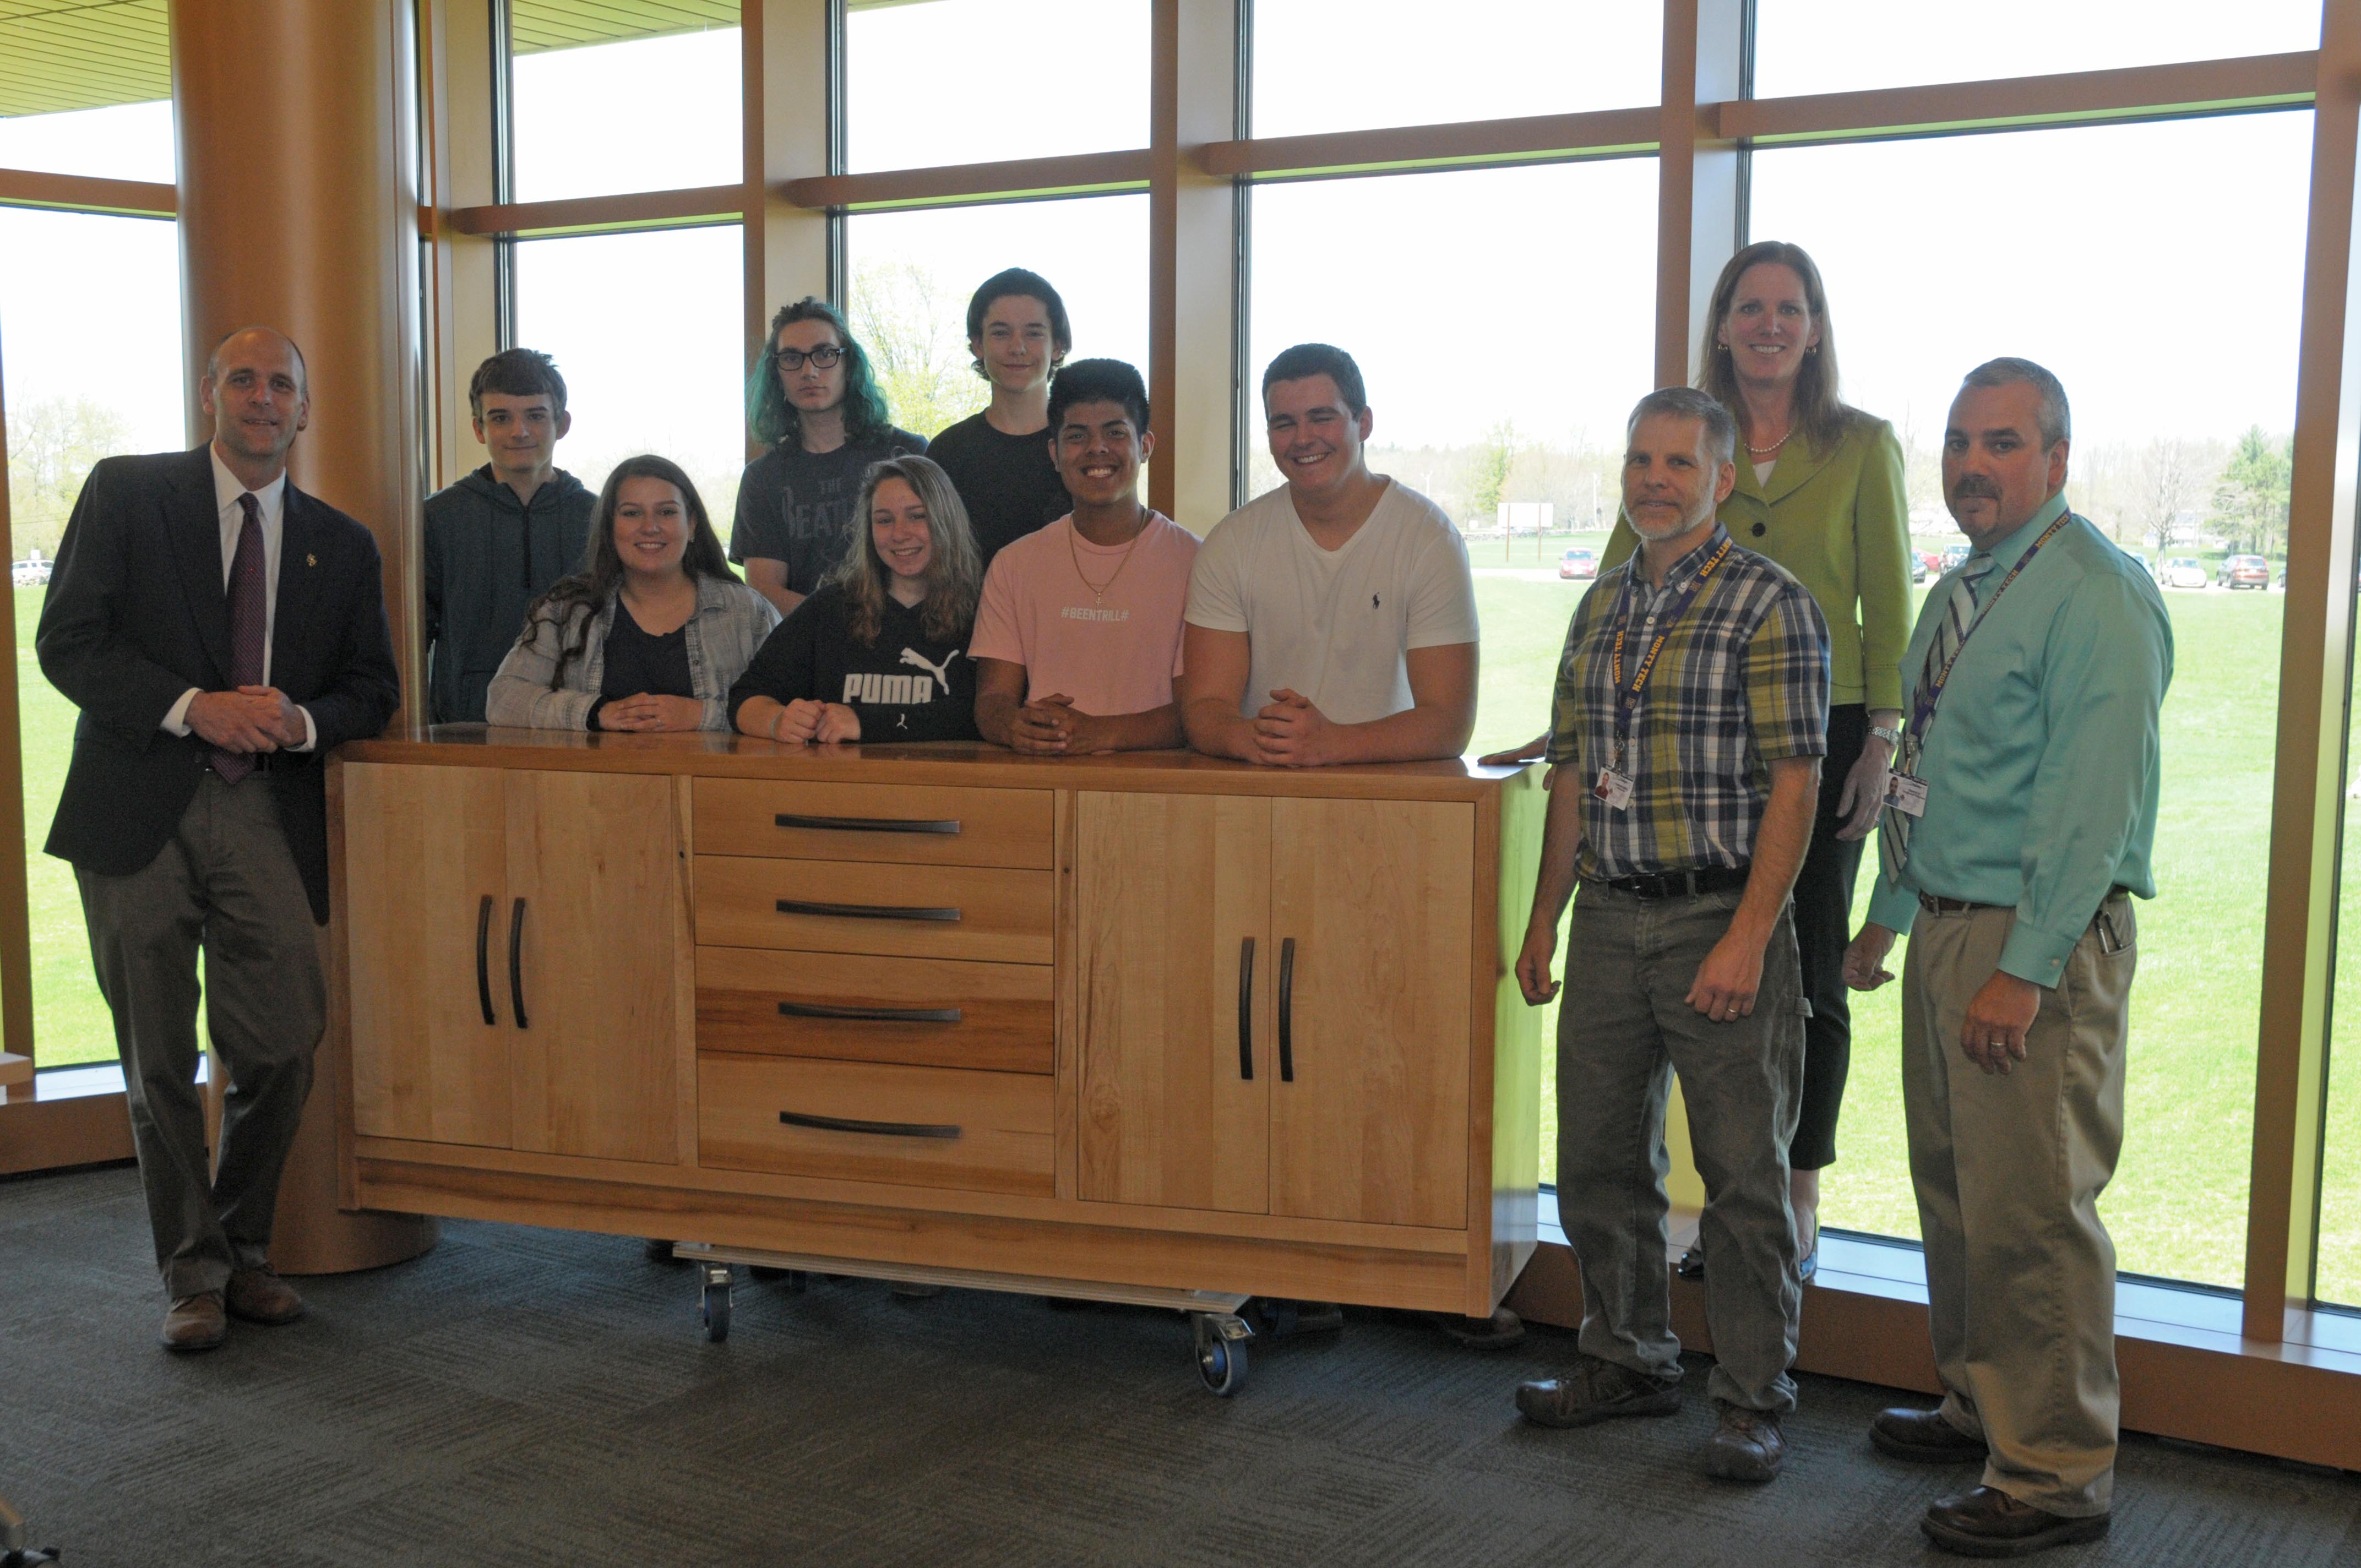 A group of students and school administrators stand in front of a piece of furniture that is roughly 3 feet tall, 12 feet long and with multiple drawers.